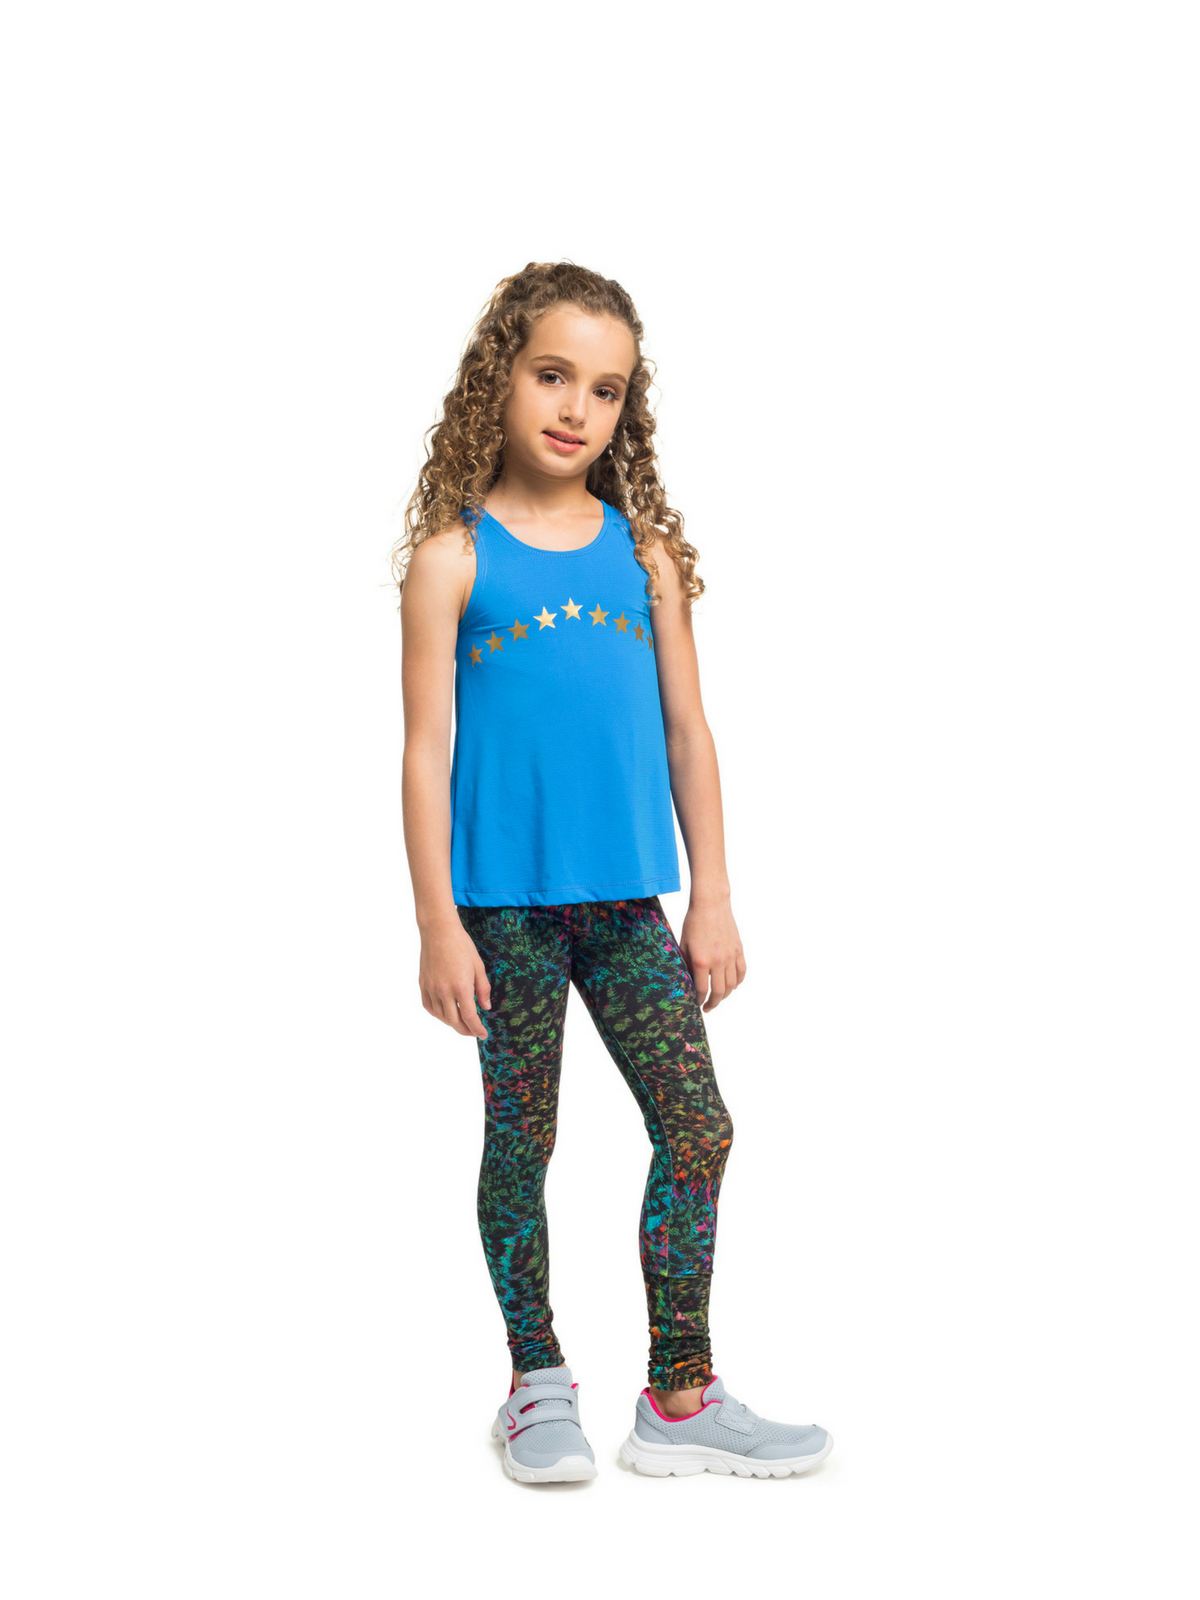 Girls Activewear Archives